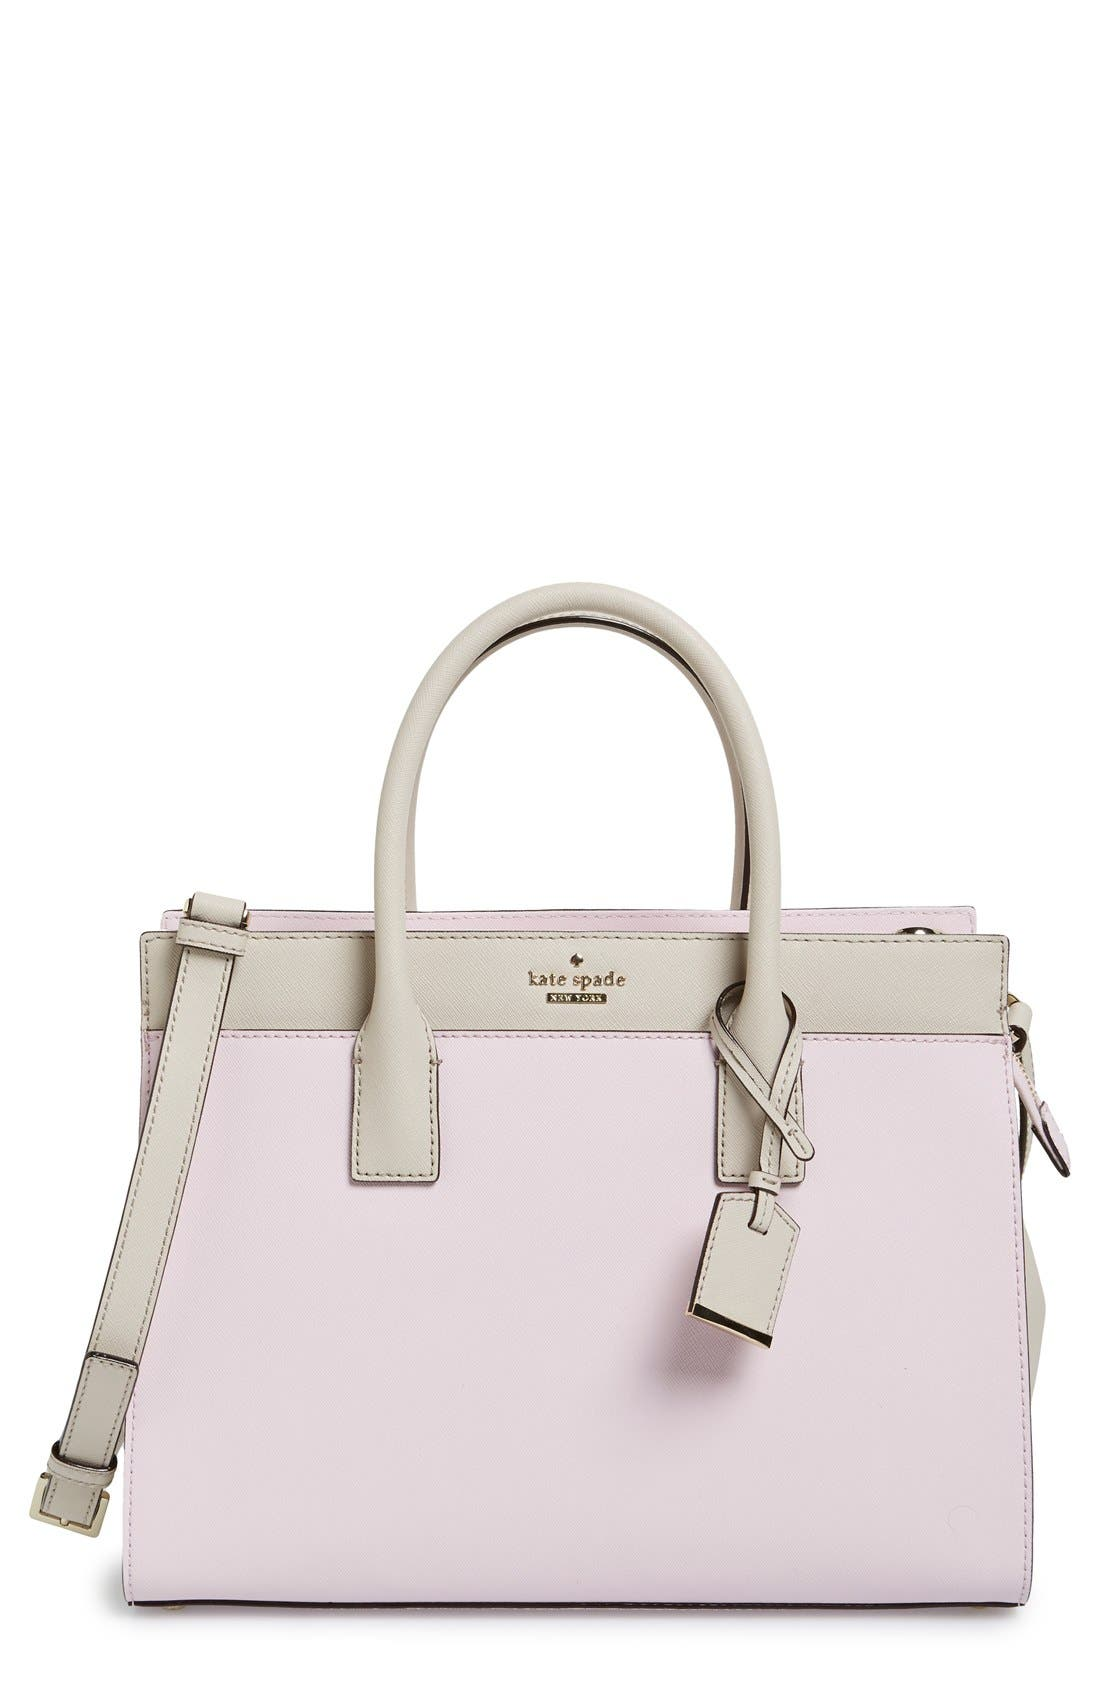 cameron street - candace leather satchel,                             Main thumbnail 20, color,